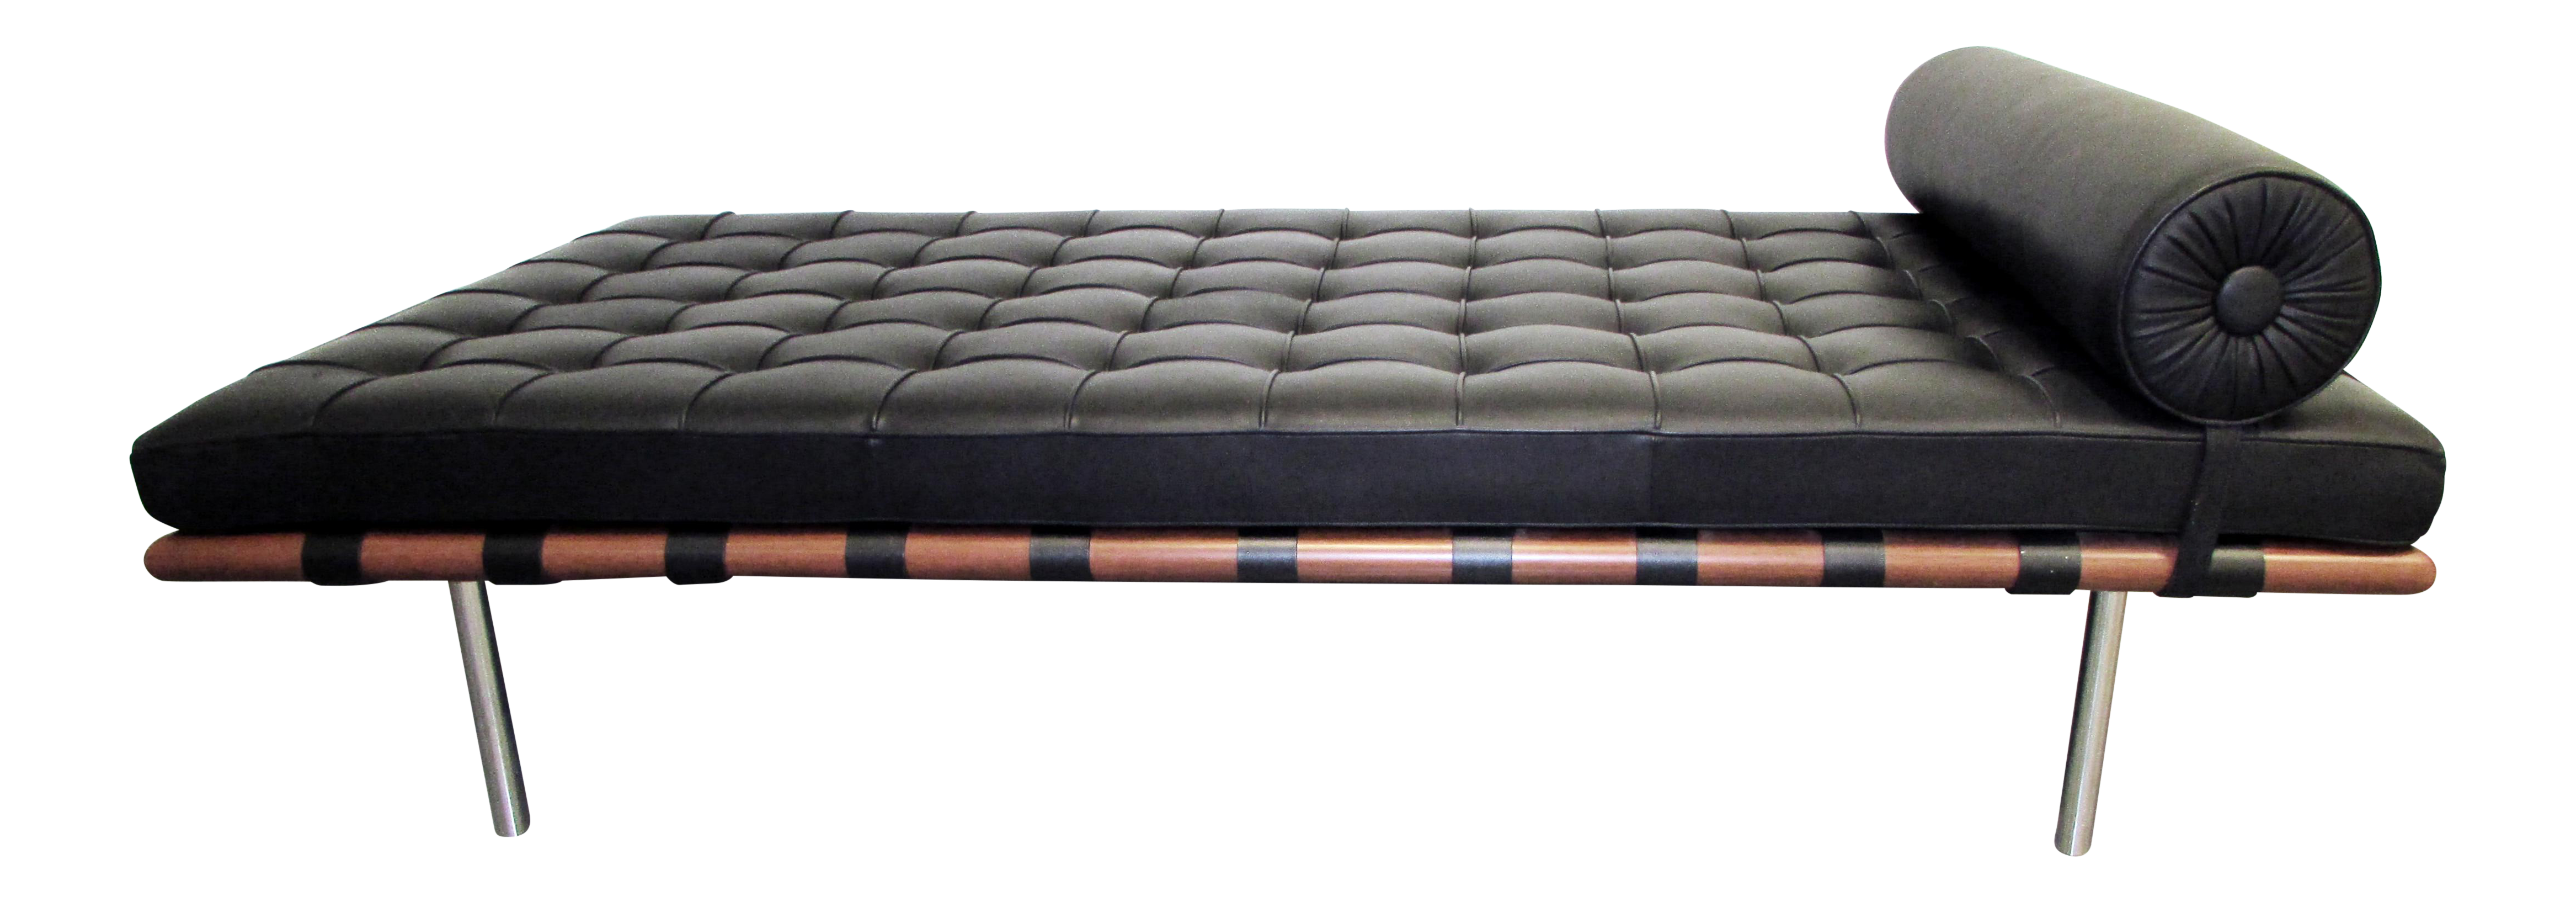 van couch zoom rohe mies beds by bed barcelona products ludwig der international knoll day en liege